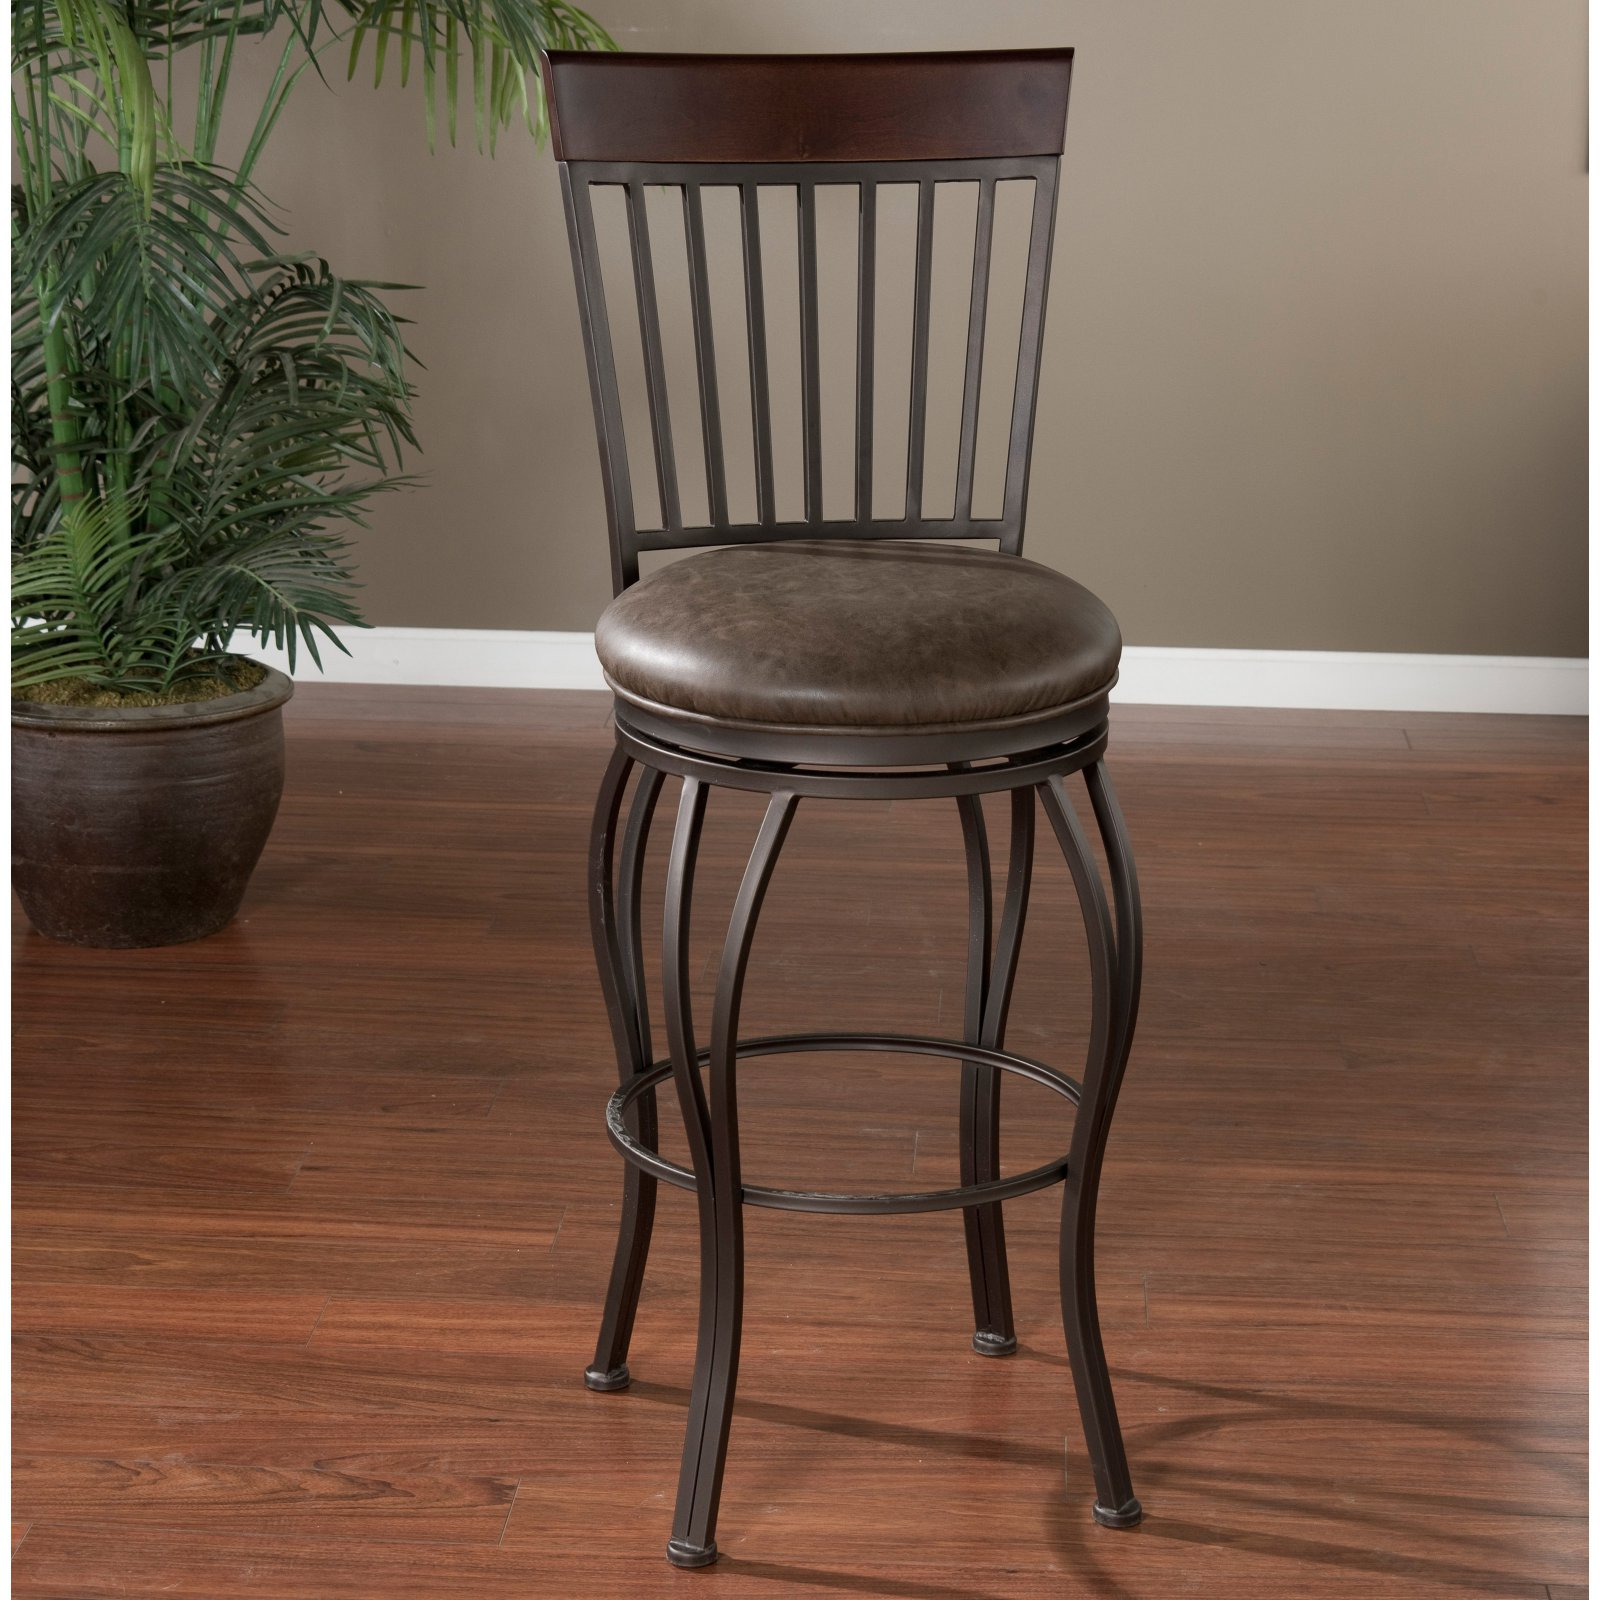 AHB Torrance Bar Stool - Pepper